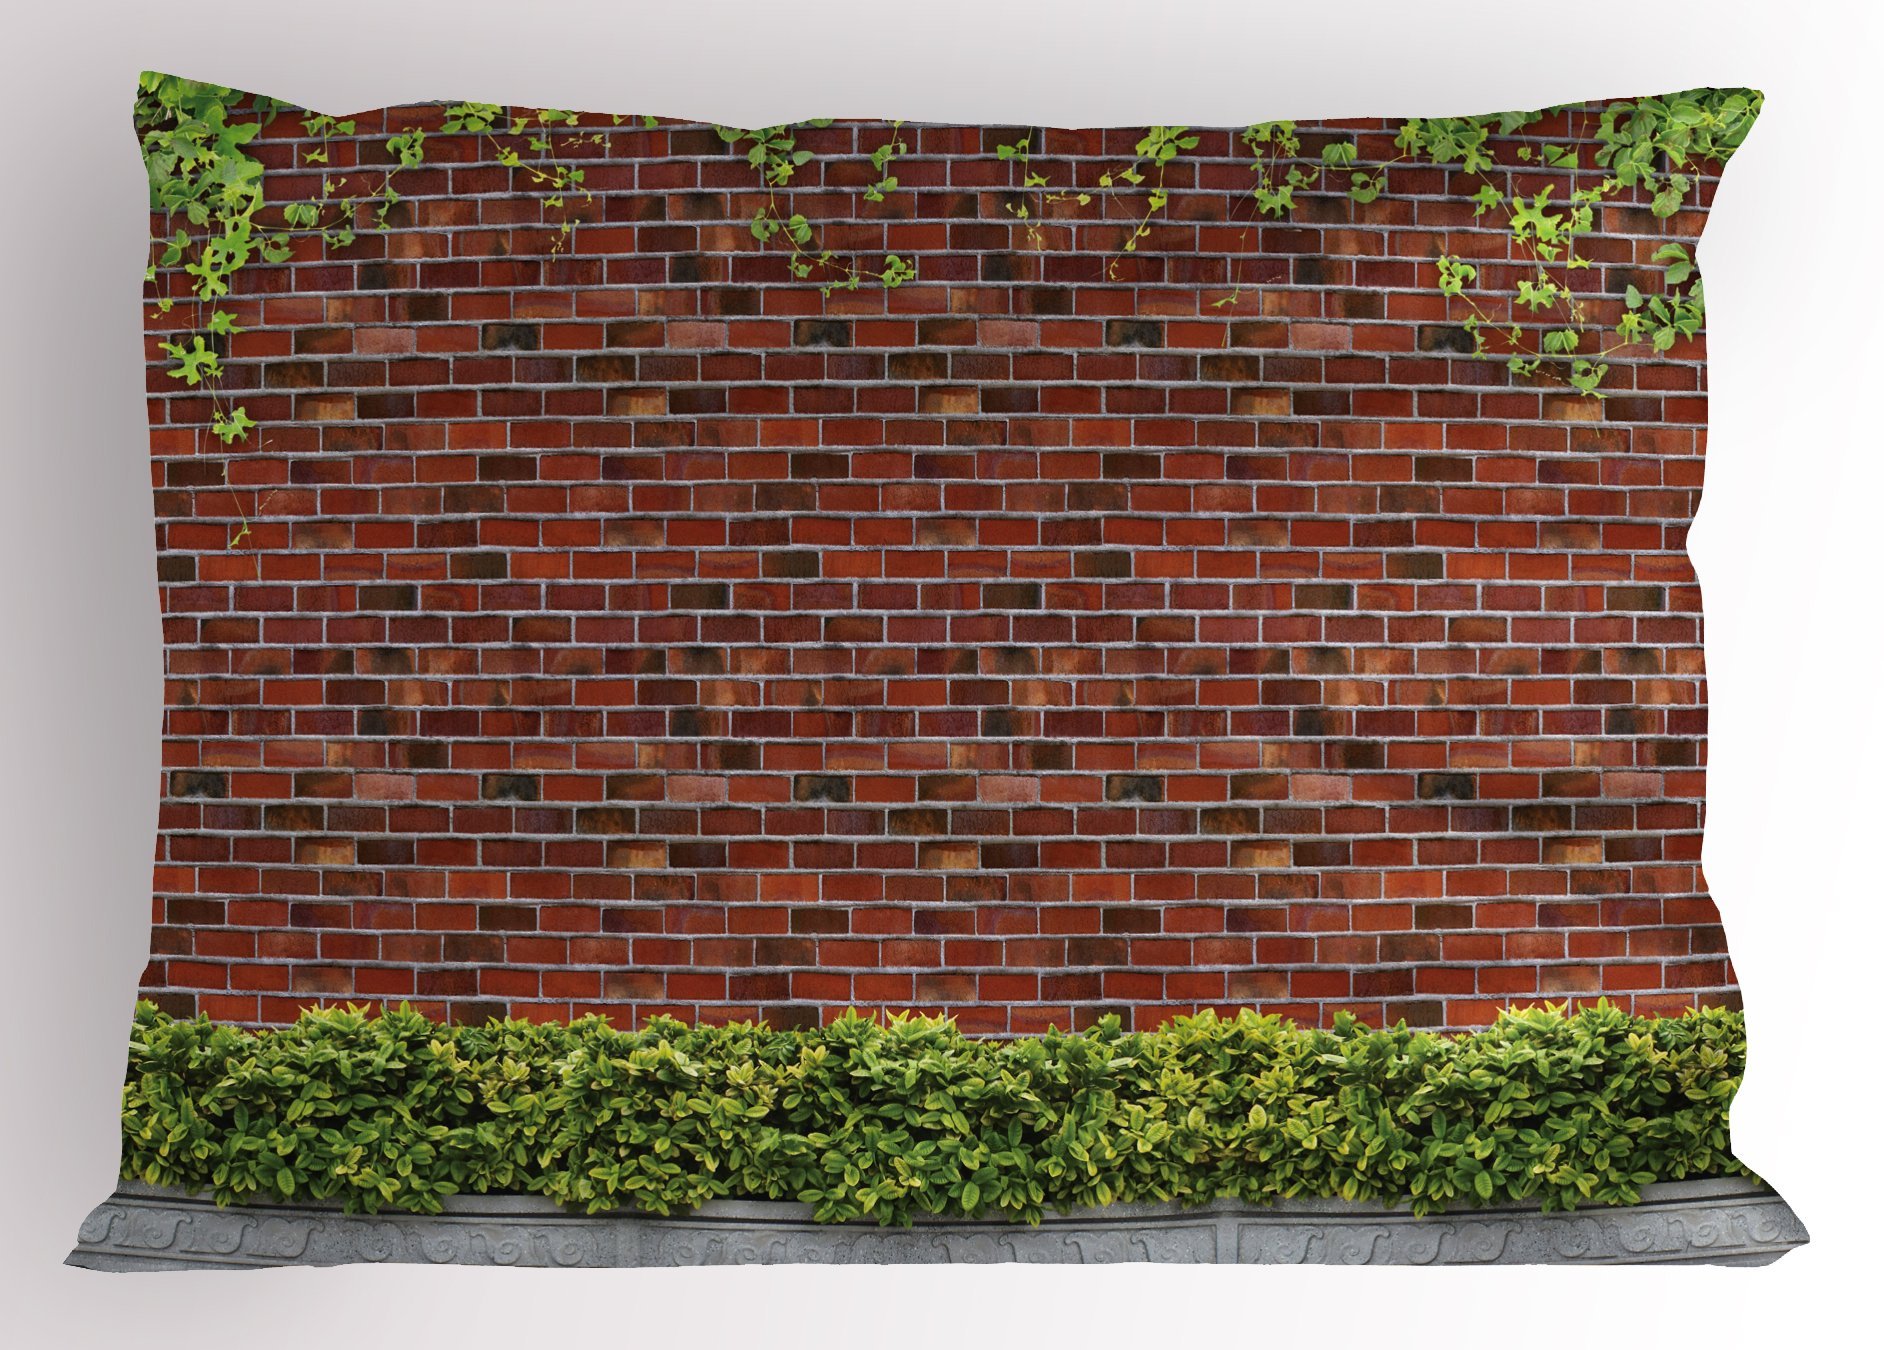 Lunarable Brick Wall Pillow Sham, Brick Wall with Creeper Plants and Leafs Natural Beauty Pattern Print, Decorative Standard Size Printed Pillowcase, 26 X 20 inches, Tile Red Green White